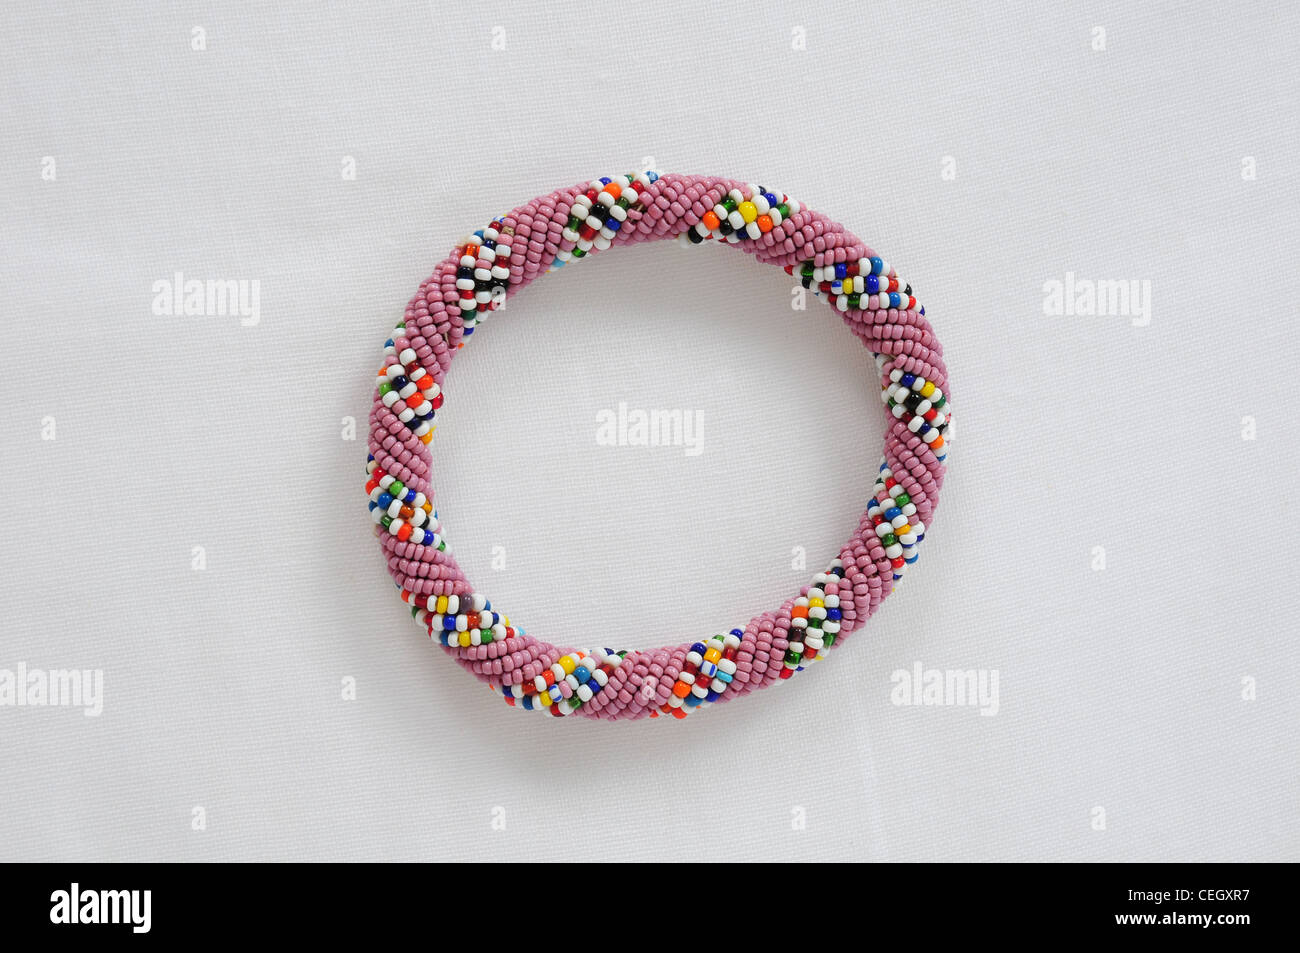 Beads South African Stock Photos & Beads South African Stock Images ...